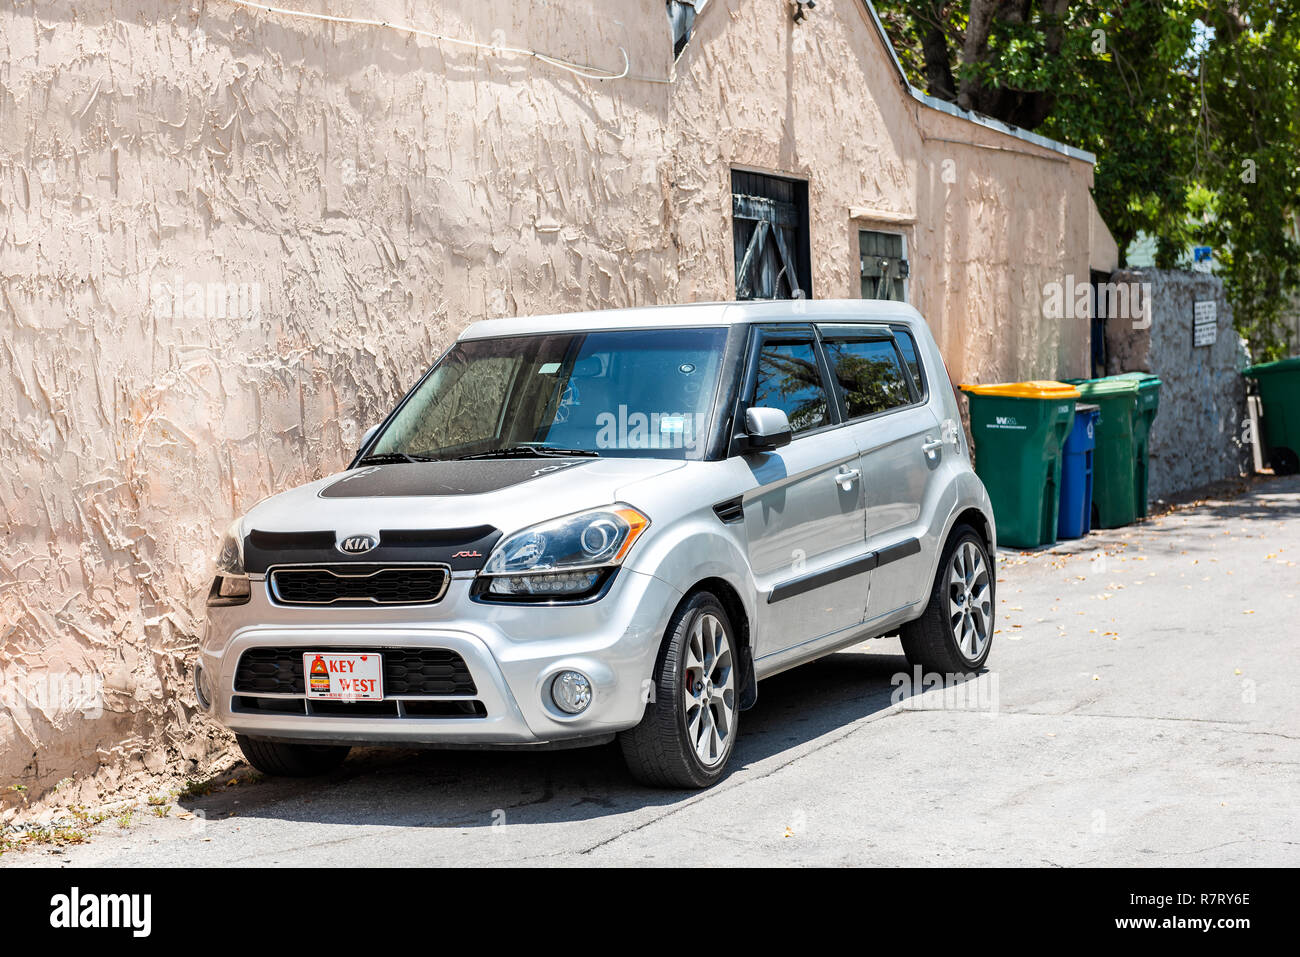 Key West, USA - May 1, 2018: Local car on street with license plate sign in Florida city travel, sunny day, parallel parked on street Stock Photo